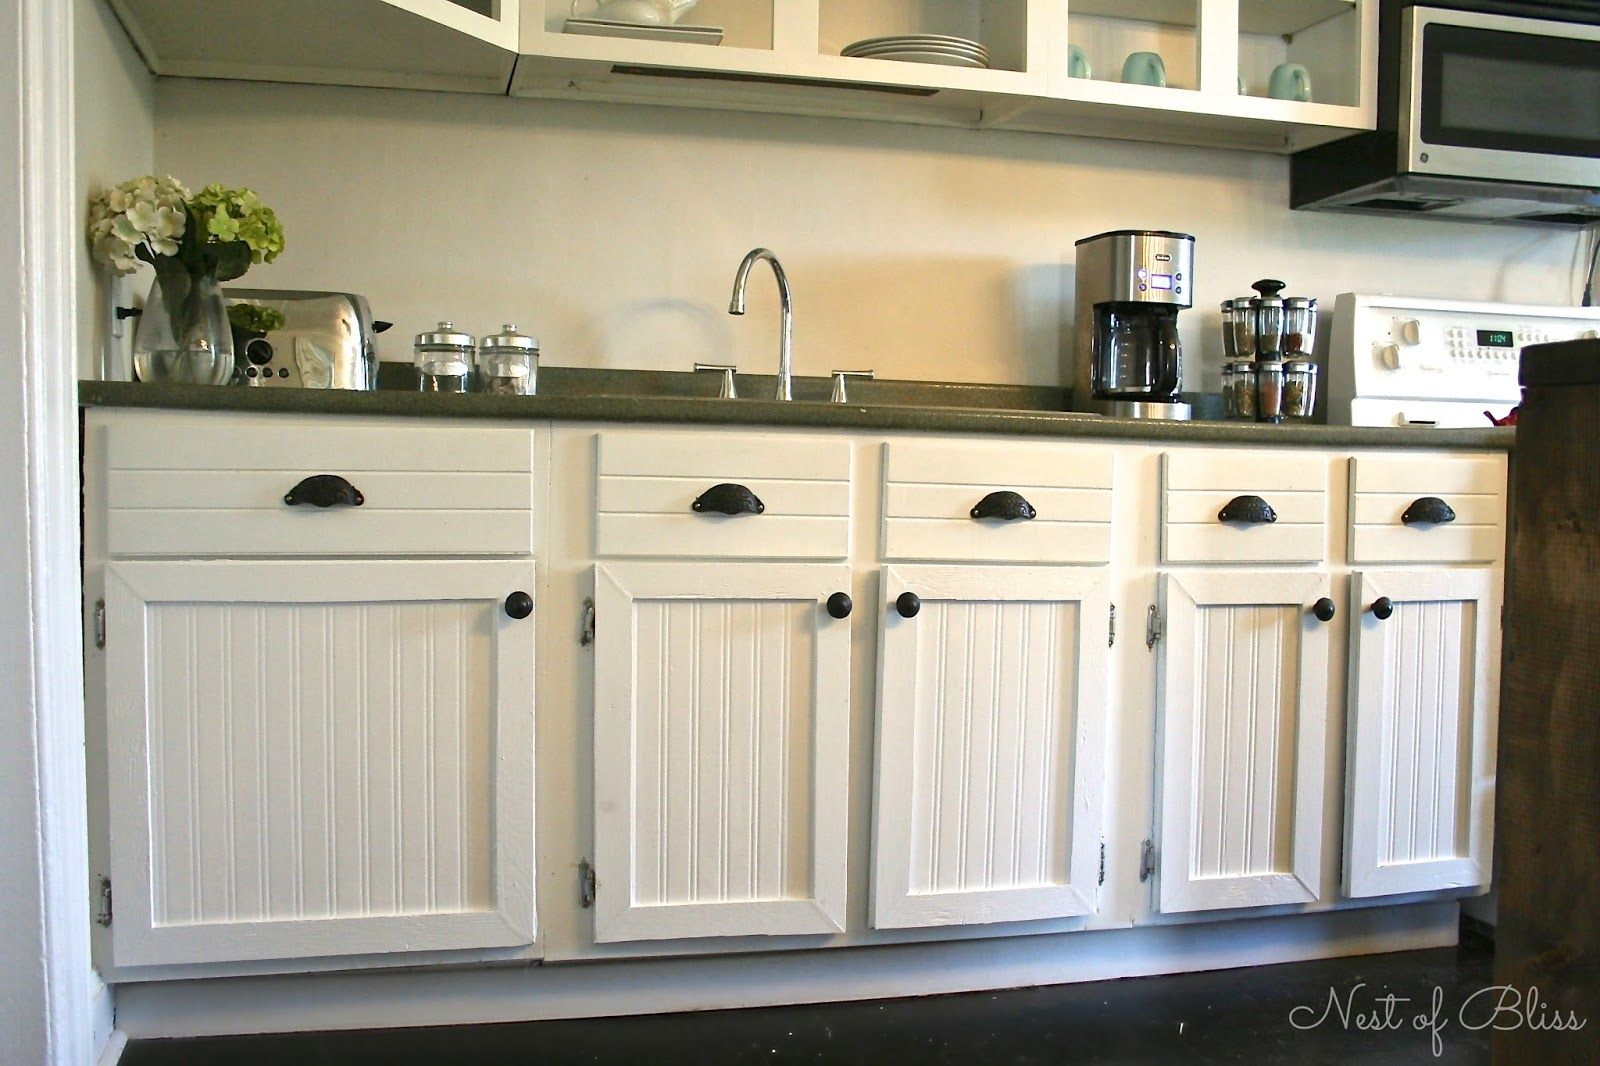 Diy Beadboard Wallpaper Cabinets I Would Like To Do This To Our Cabinets I Also Like The L Beadboard Kitchen Wainscoting Kitchen Beadboard Kitchen Cabinets